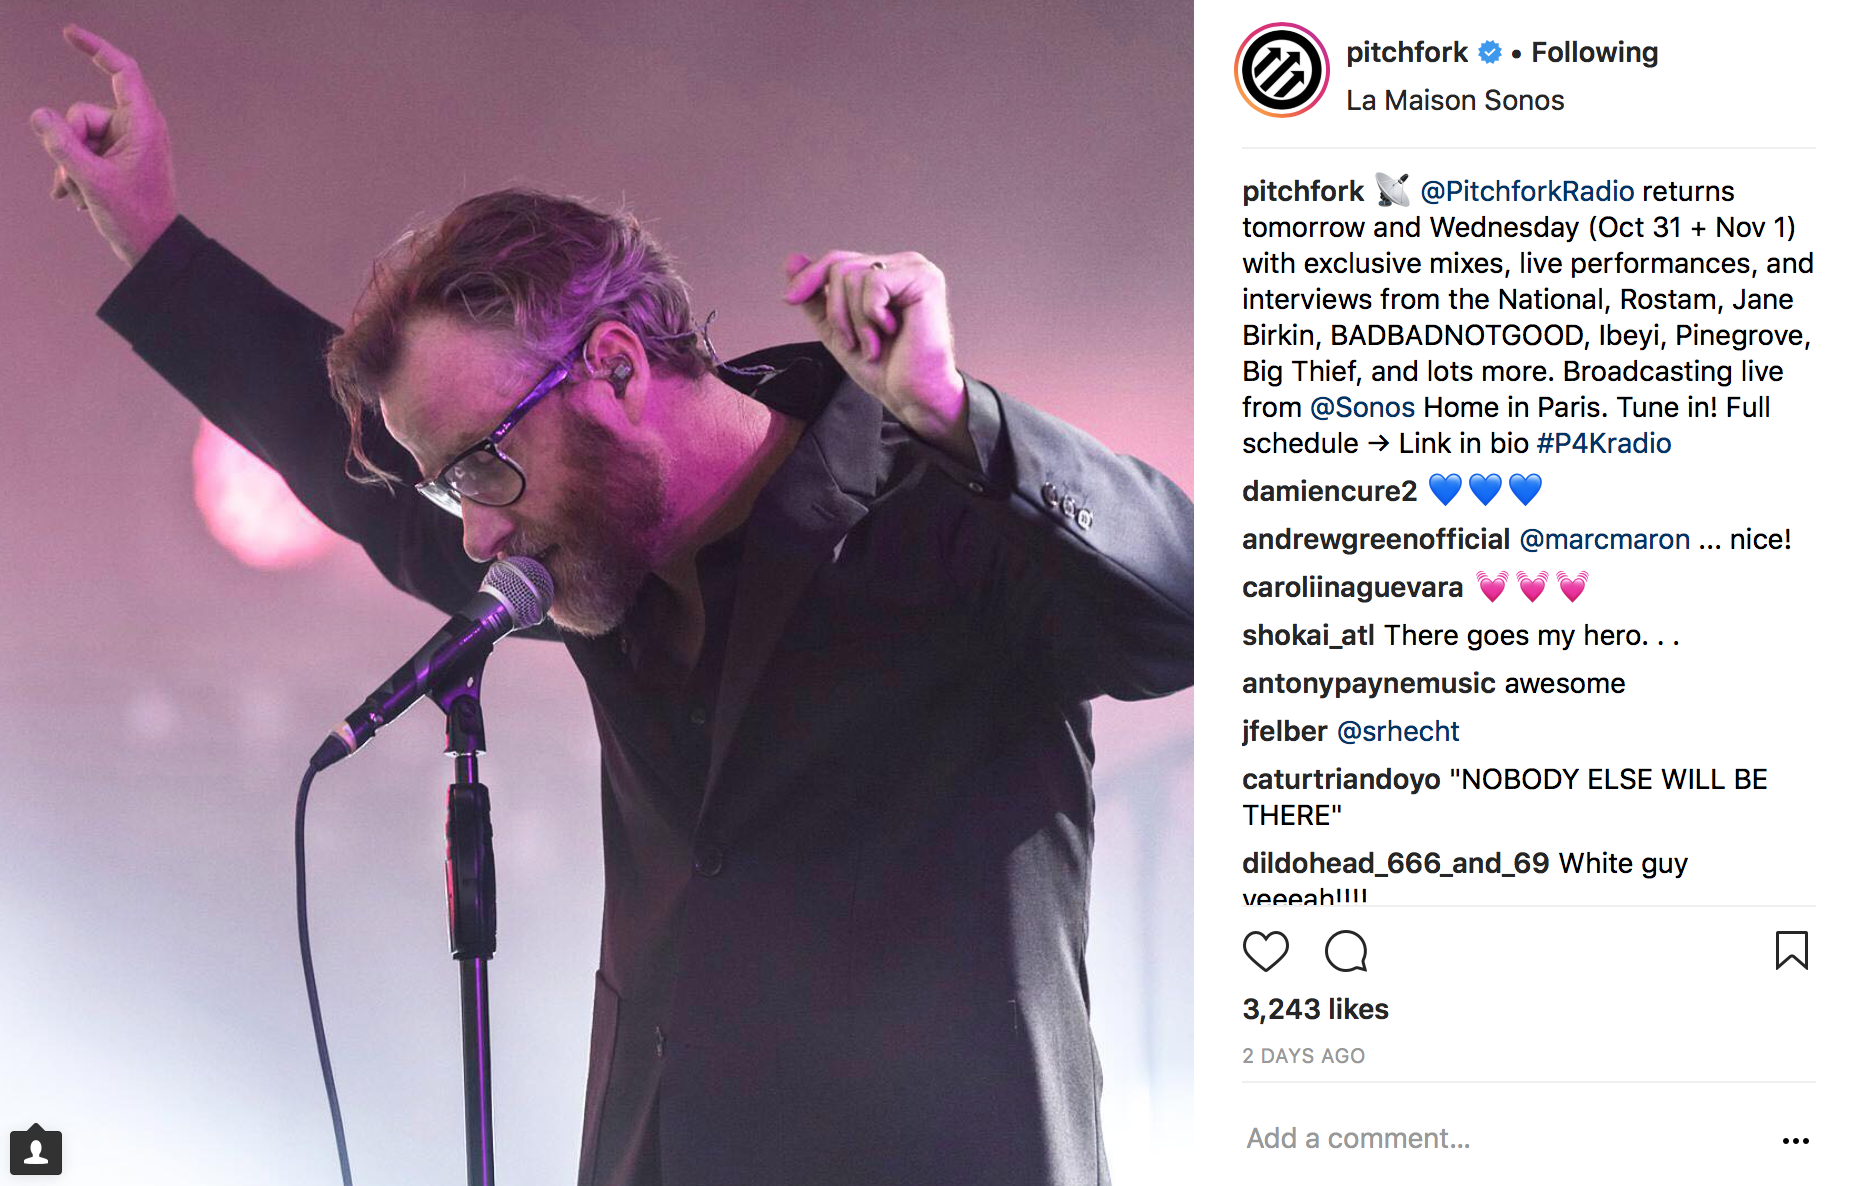 Pitchfork Instagram